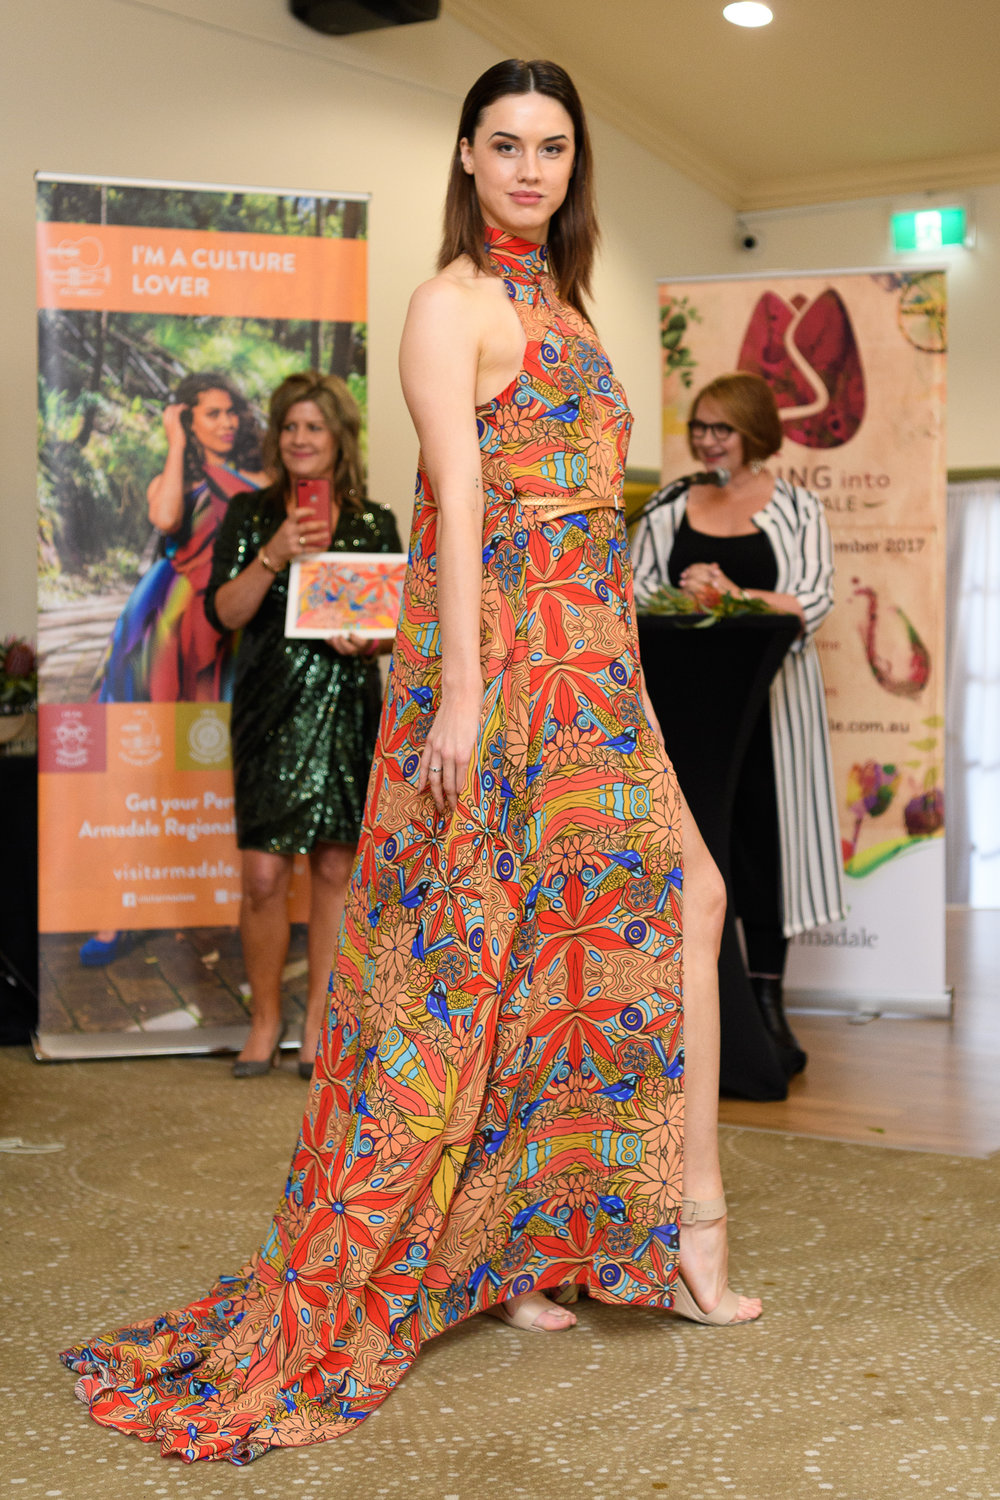 """Graduates of Cat Birch's """"Life Skills Program"""" will again serve as runway models for the Love is in the Air, Spring into Armadale Fashion Show, Saturday 11th August at Araluen Botanic Park, Roleystone."""